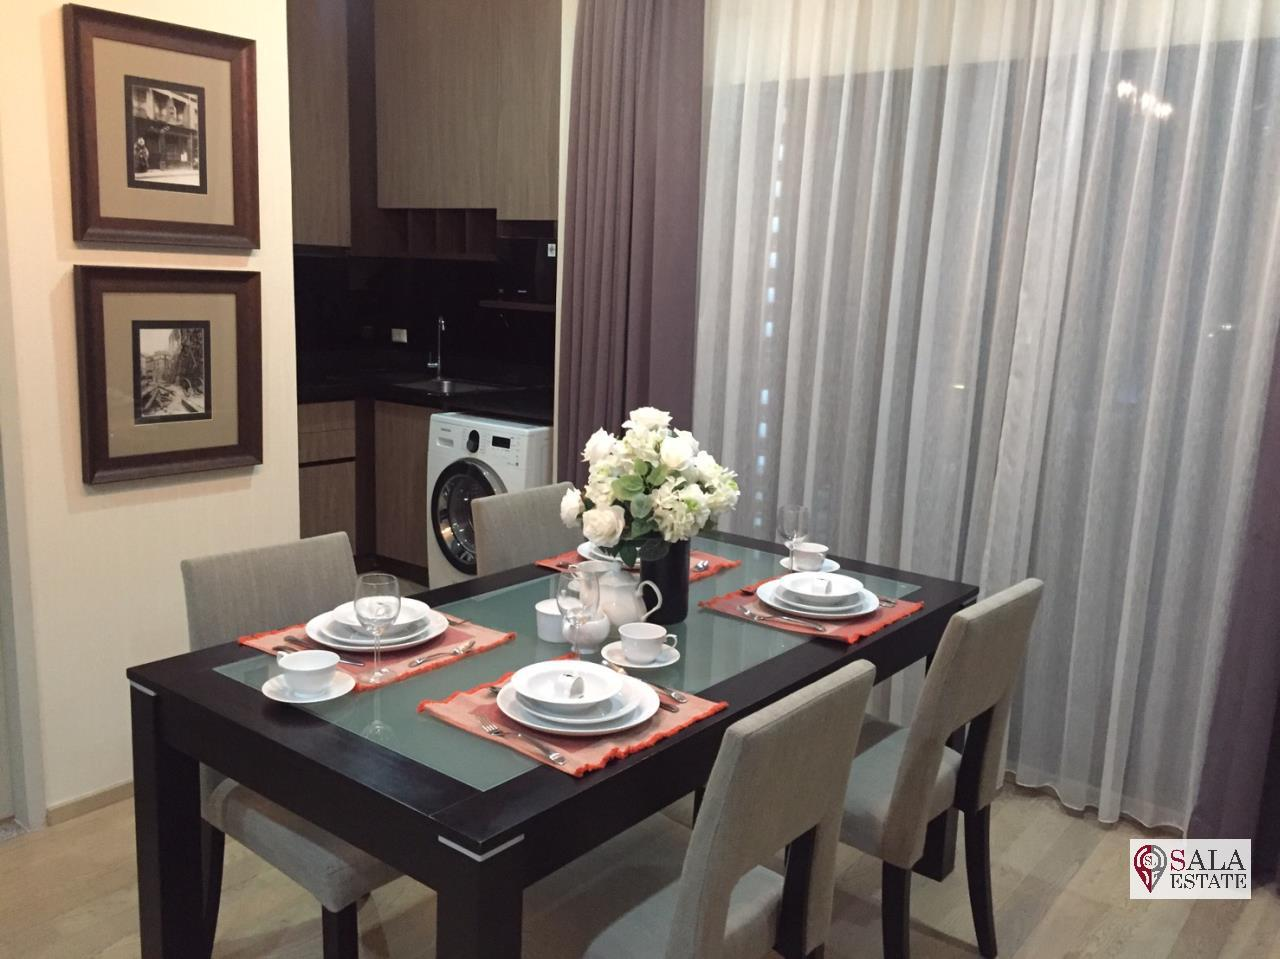 SALA ESTATE Agency's (FOR RENT/SALE) NOBLE REFINE – BTS PHROM PHONG, 2 BEDROOMS 2 BATHROOMS, FULLY FURNISHED 4